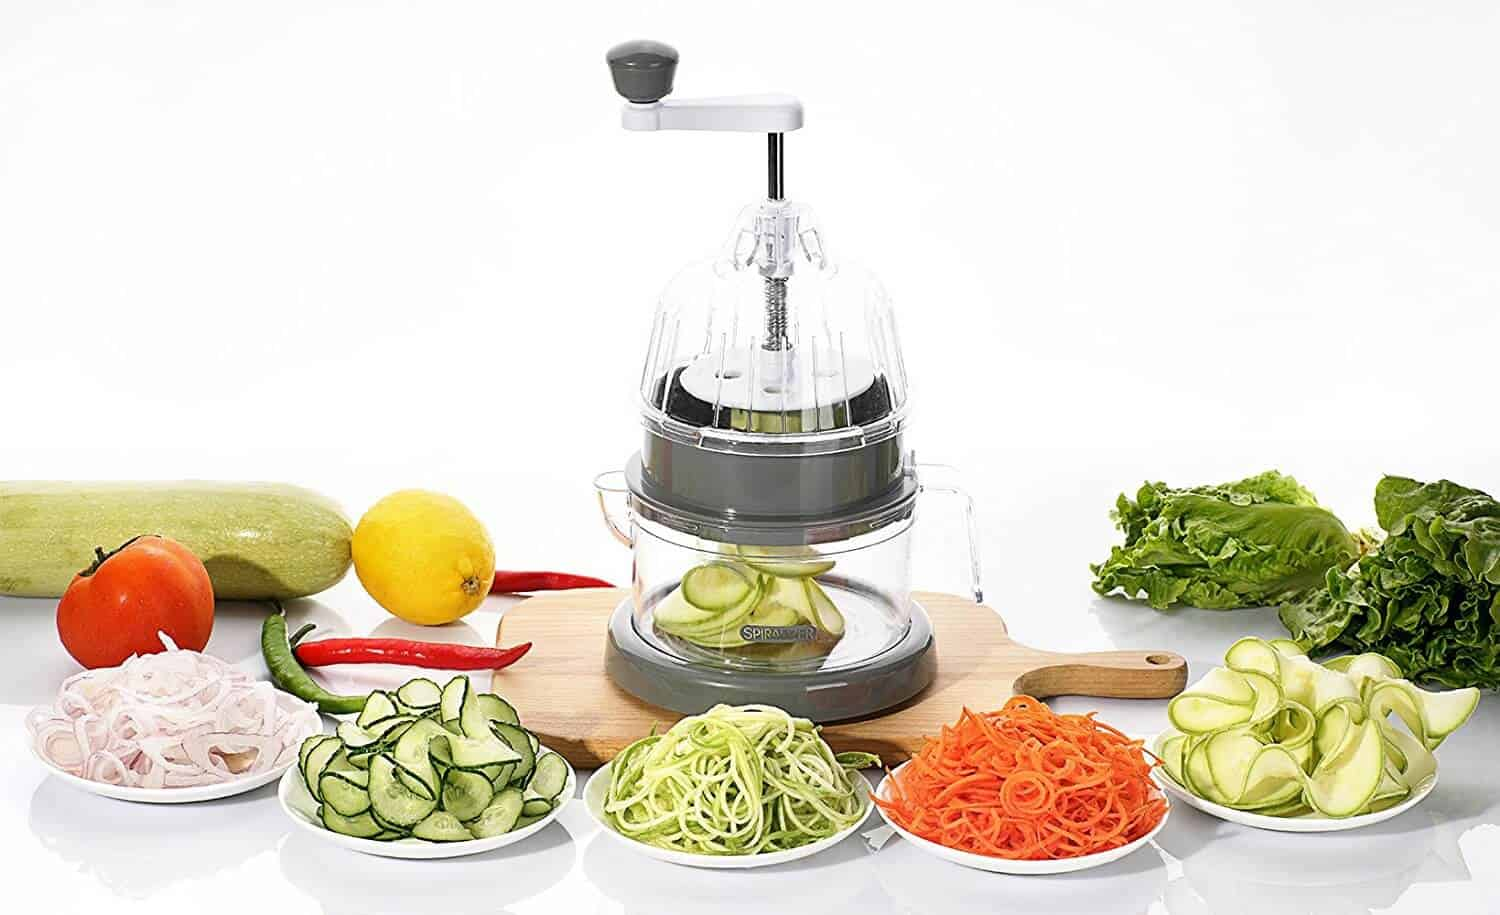 spiralizer with sliced cucumbers, zoodles, apples, great kitchen gadgets for the home cook